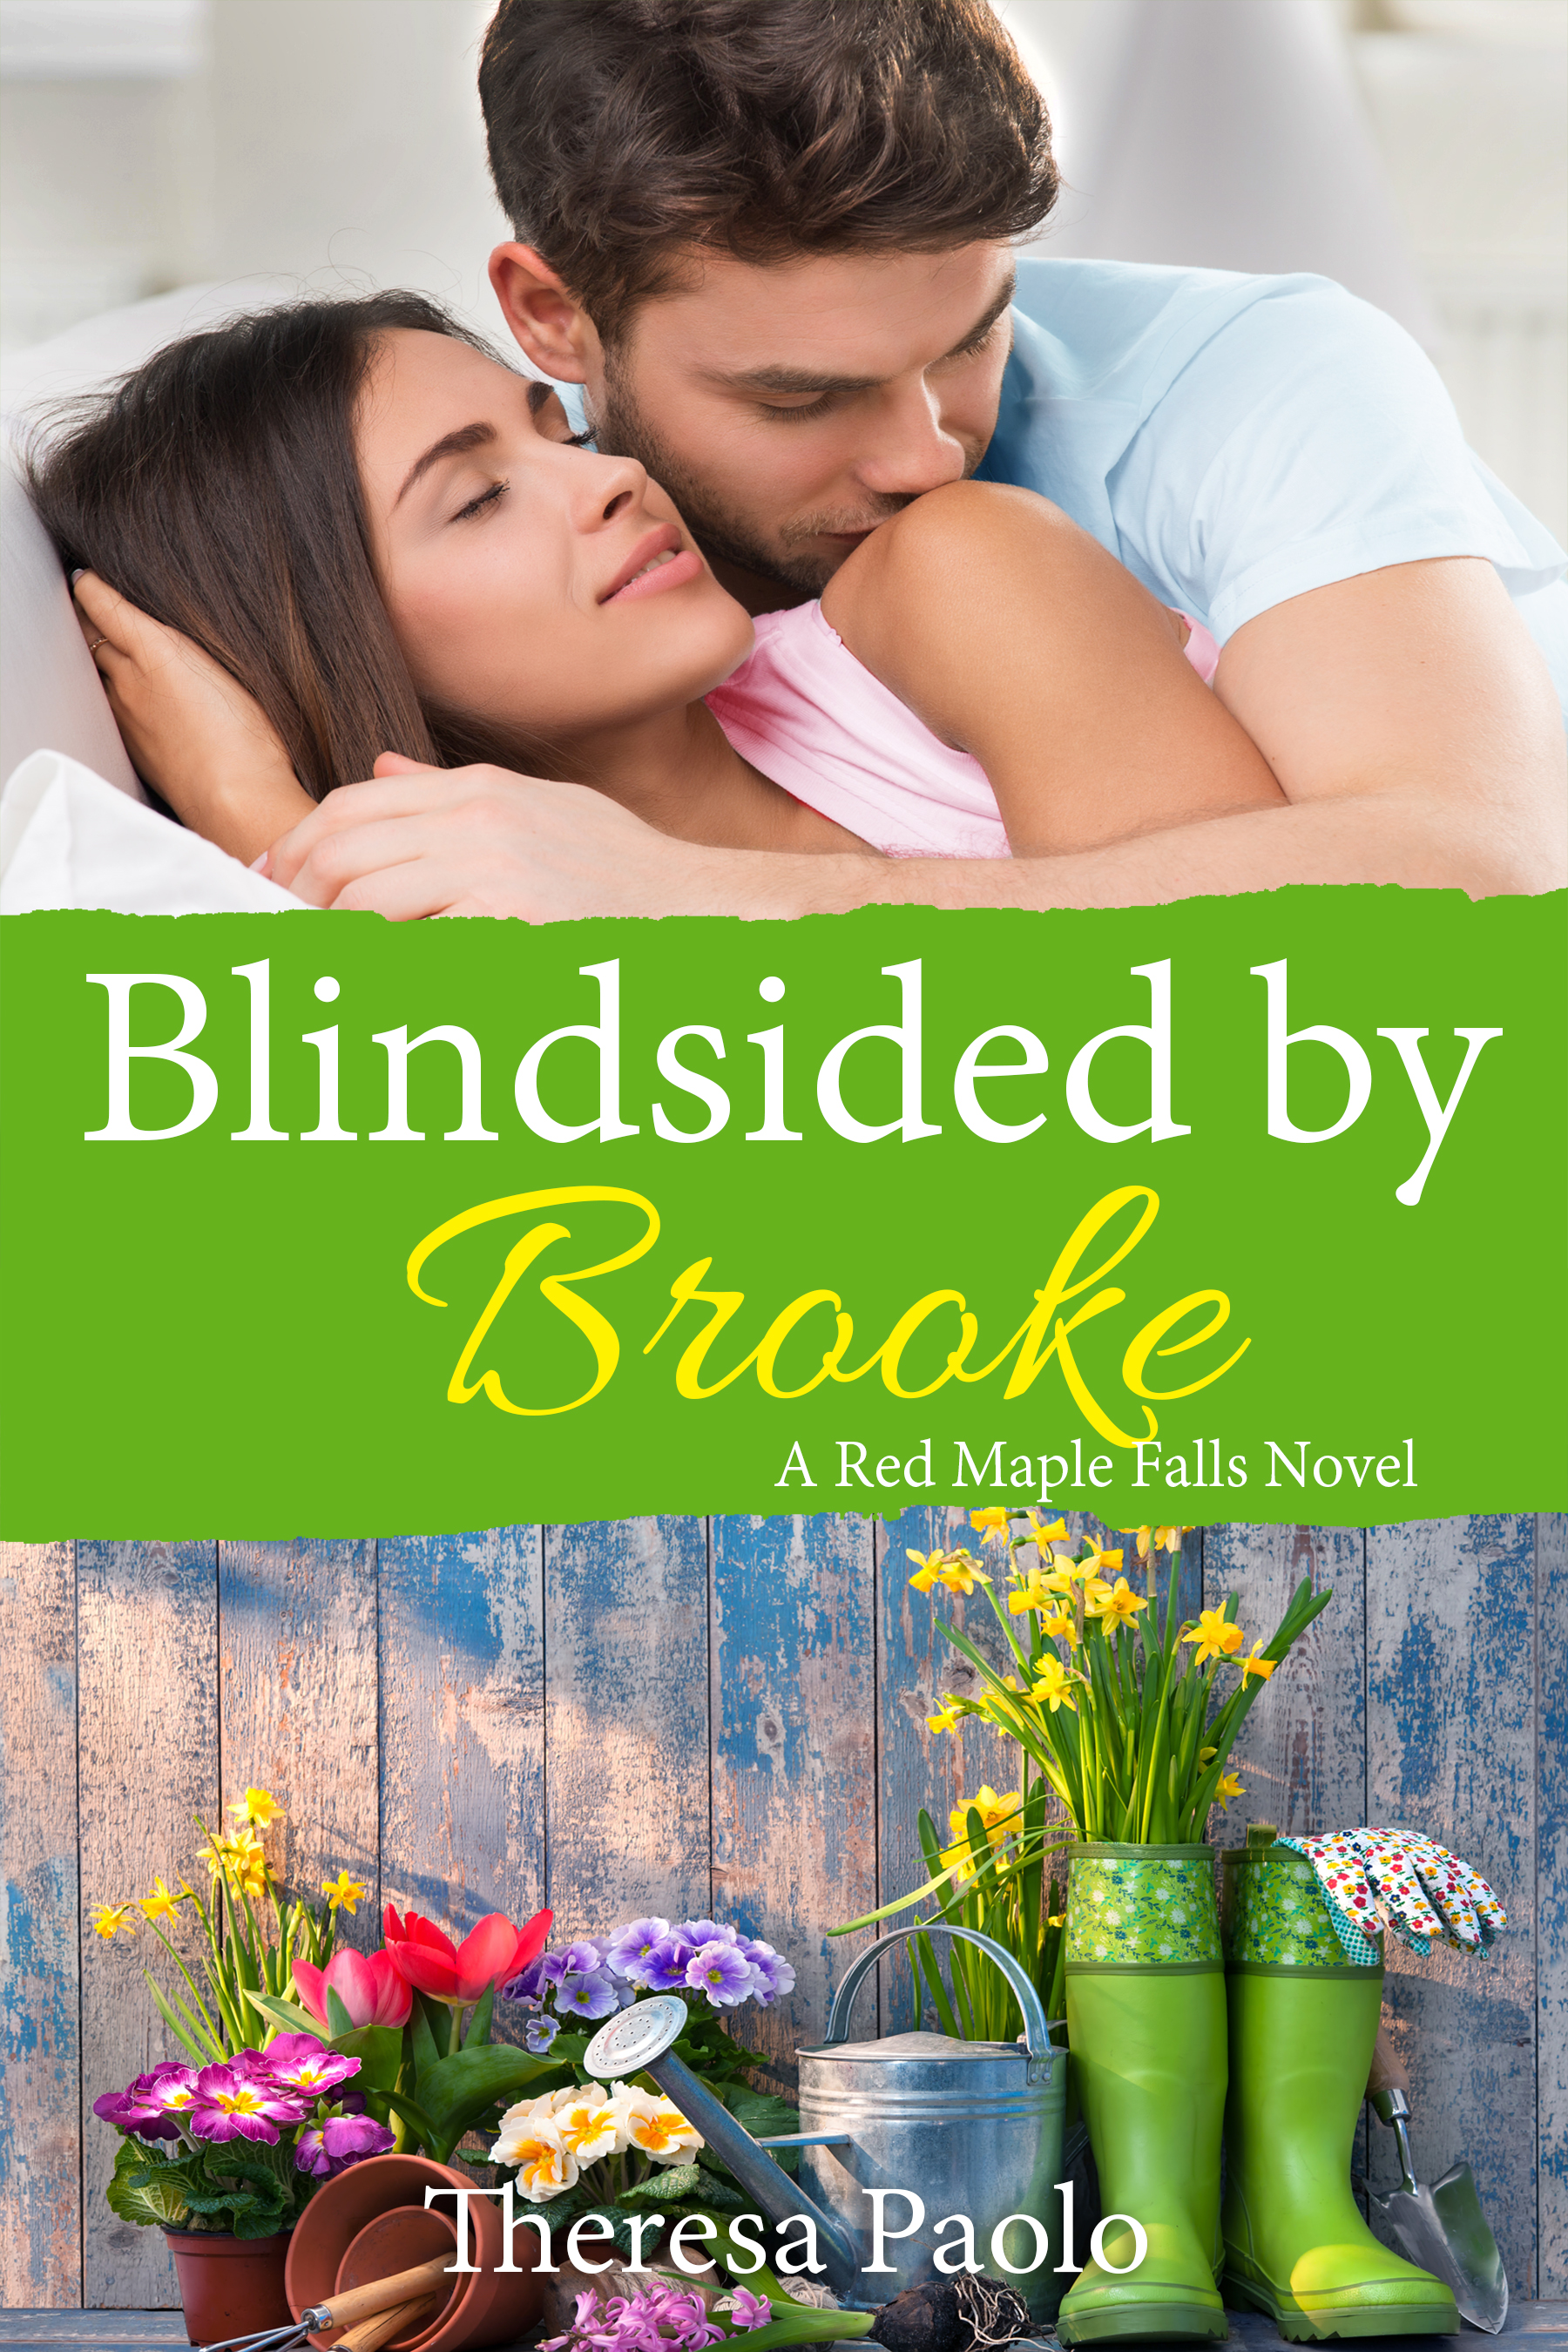 Blindsided by Brooke (sst)